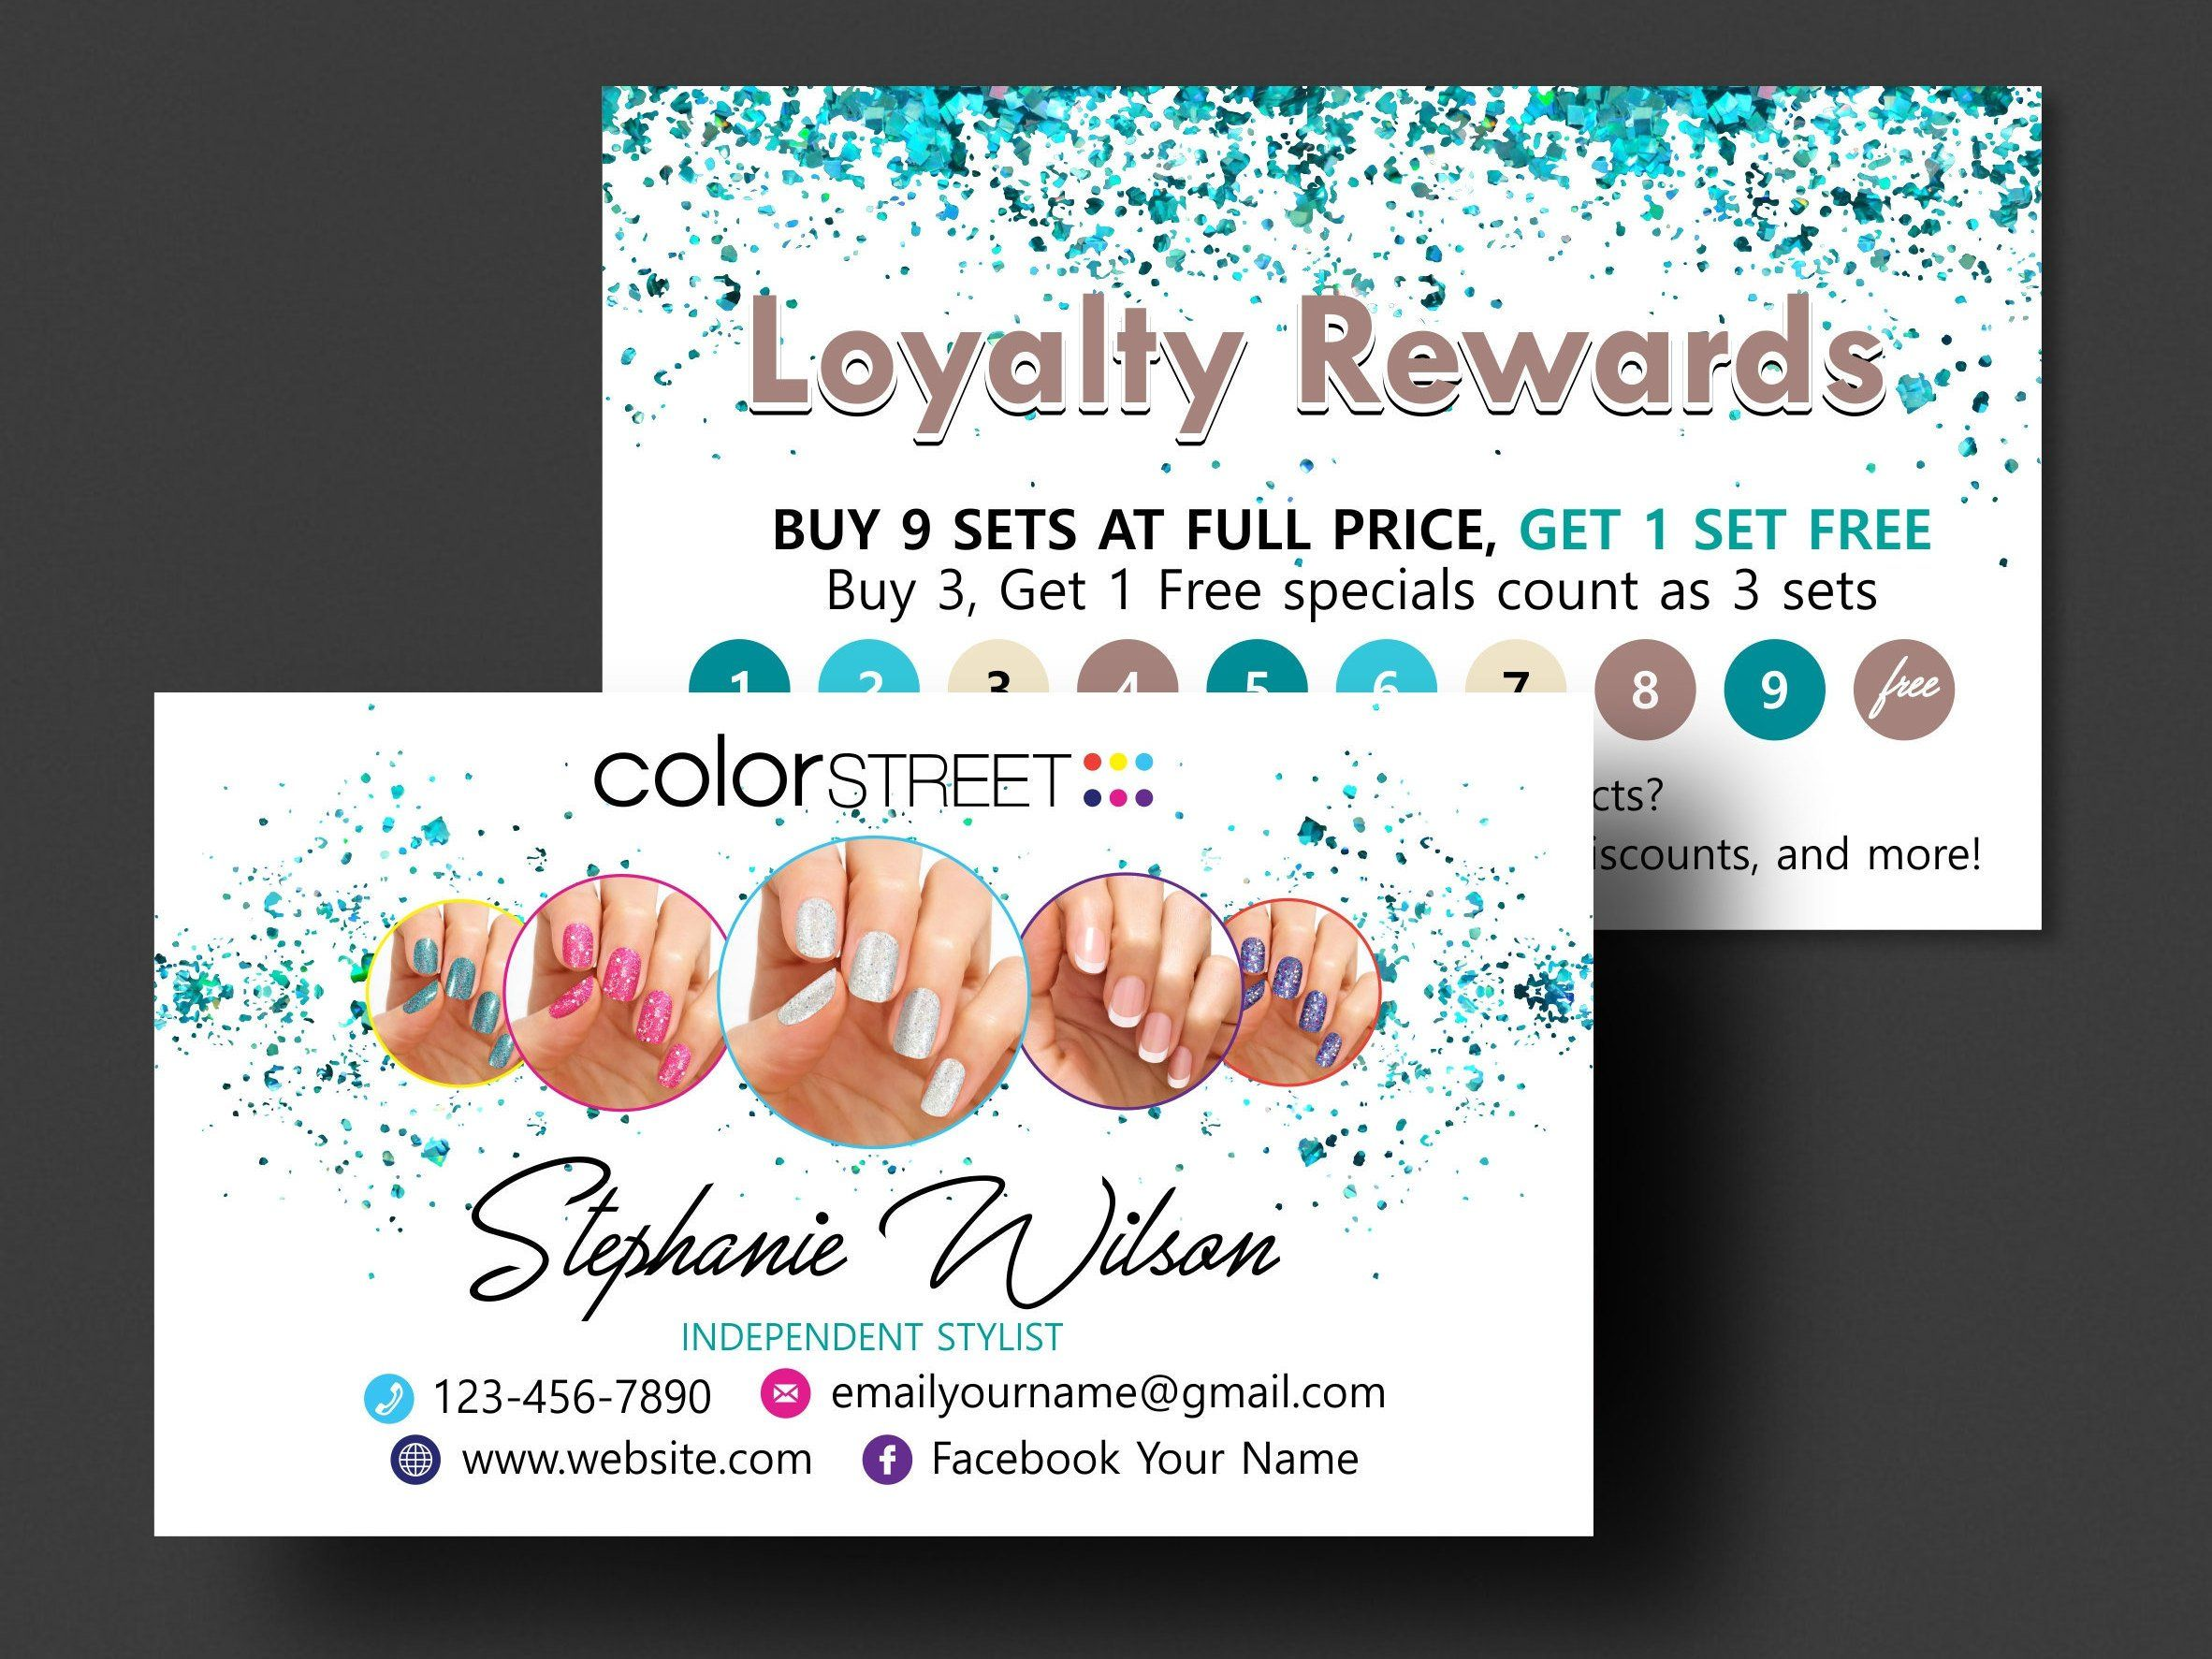 Color Street Loyalty Cards Printable Color Street Loyalty Rewards Template Colorstreet Business Cards Colorstre Printable Cards Color Street Color Street Nails